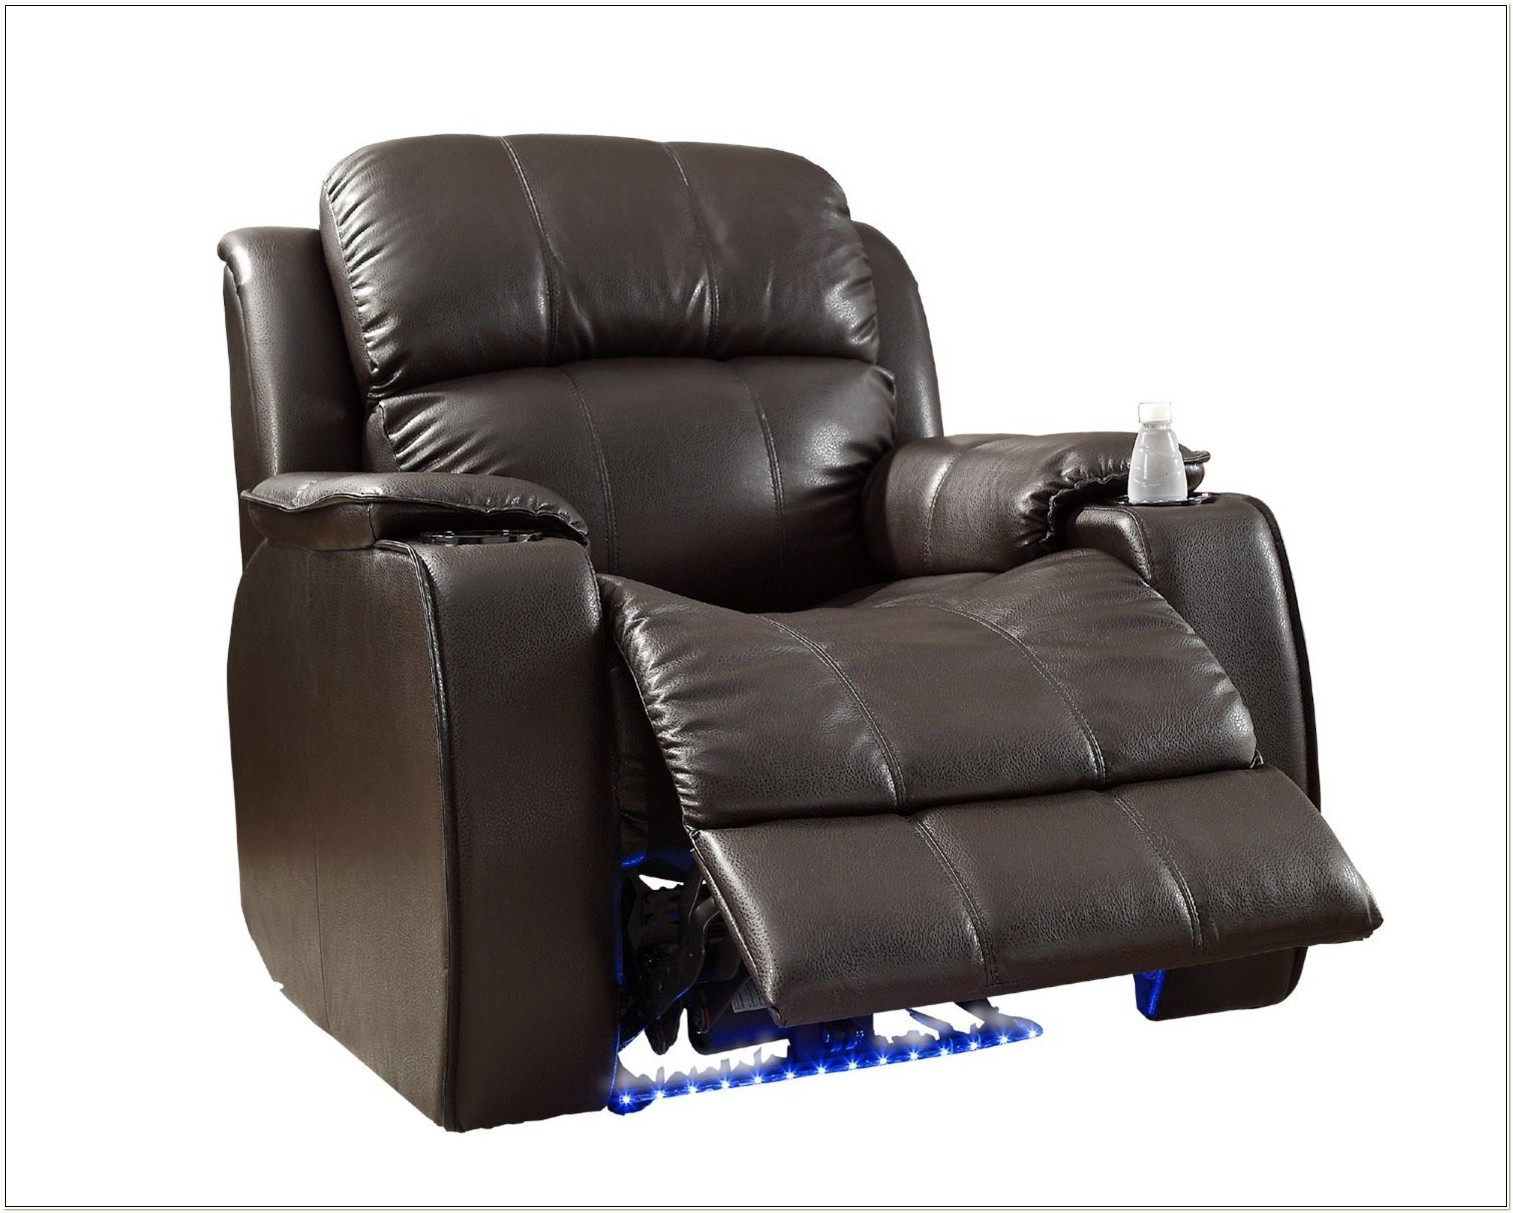 Best Rated Power Recliner Chairs